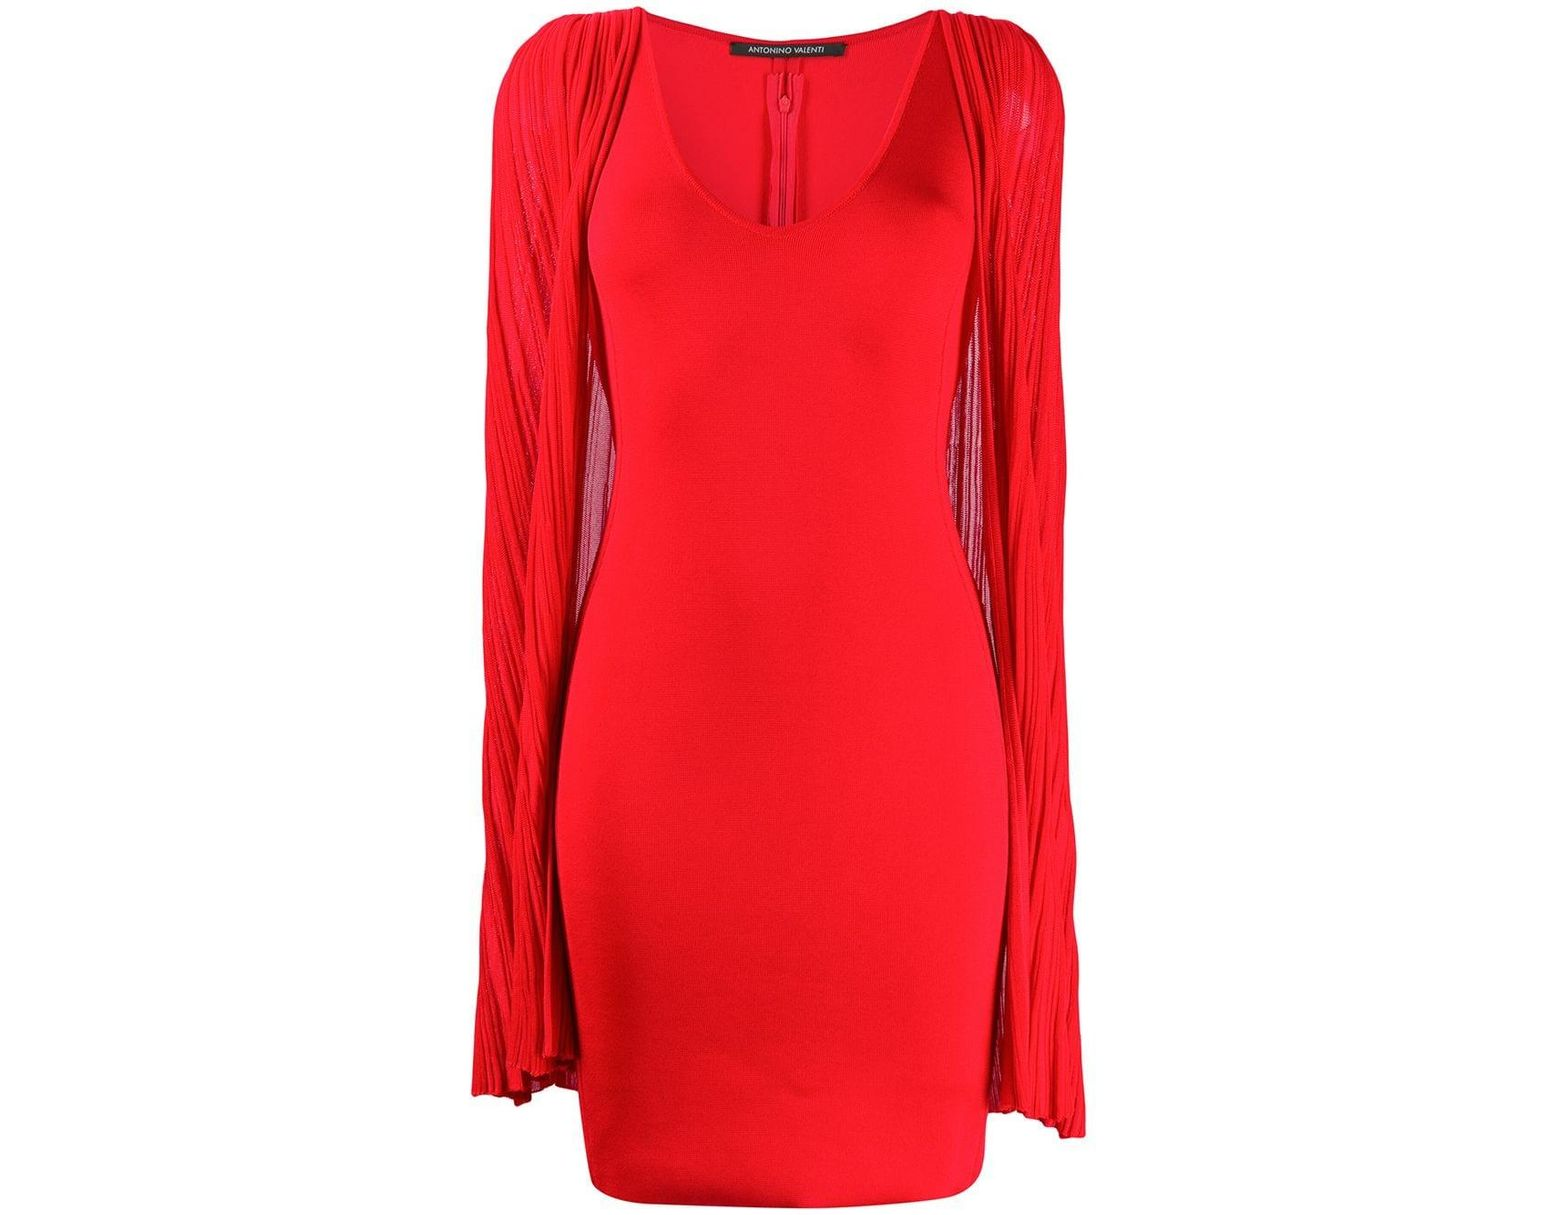 100% authentic f95af 52263 Women's Red Agnese Cape Dress